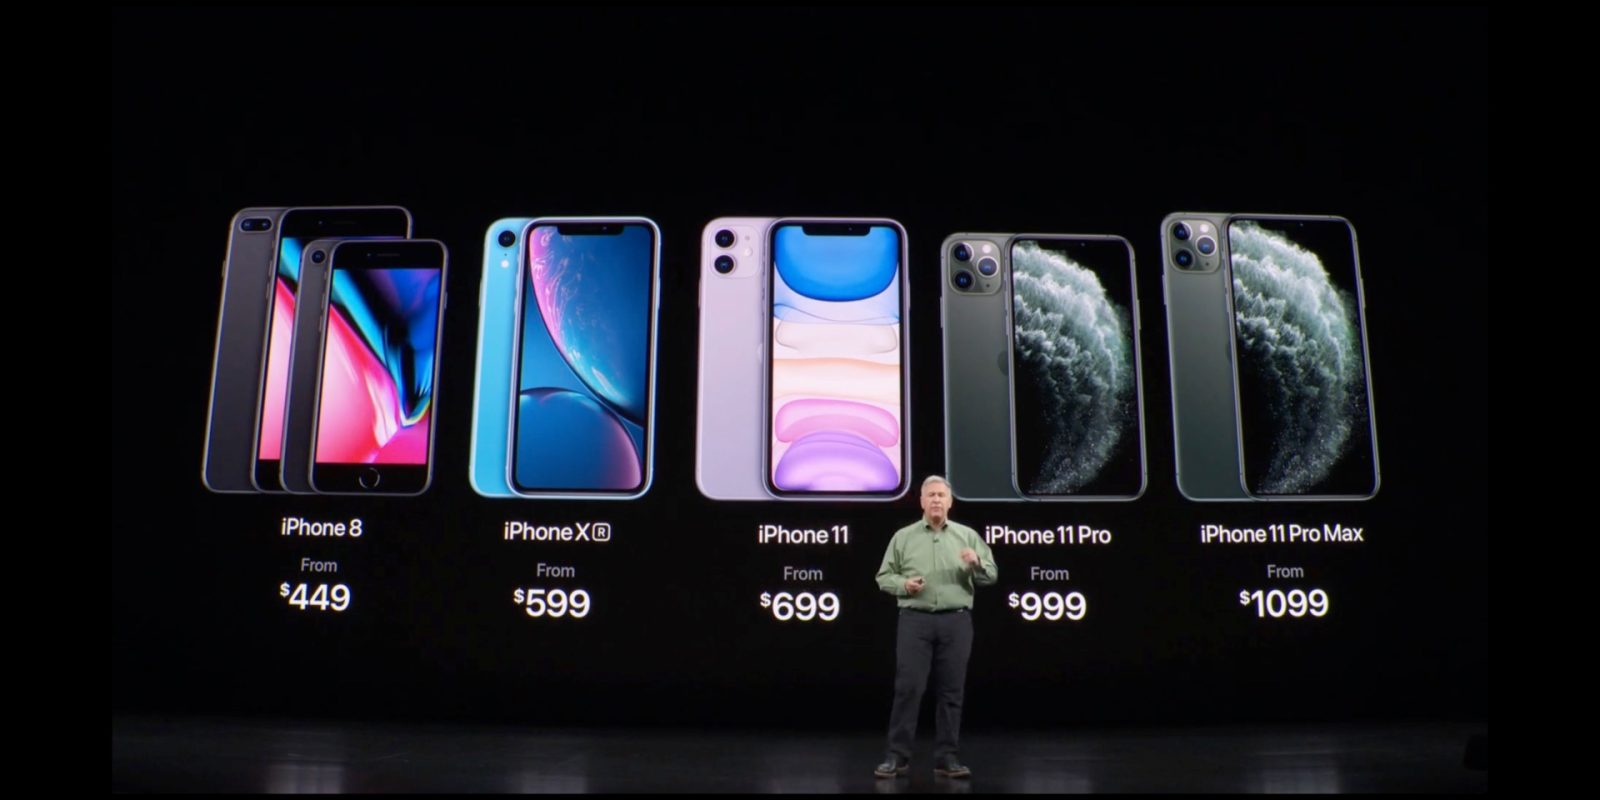 iPhone XR drops to $599, iPhone 8 to $449, following iPhone